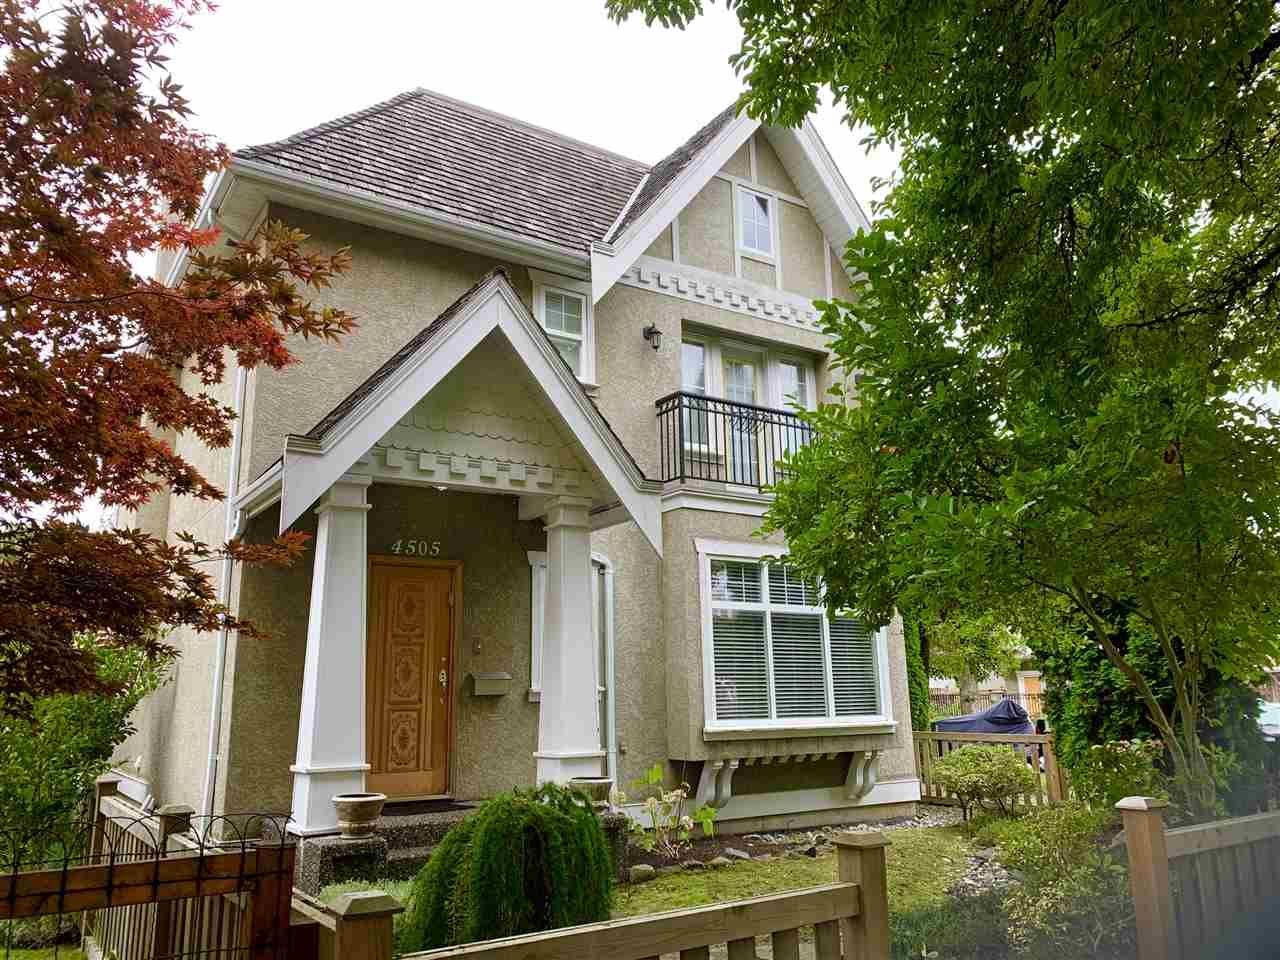 Main Photo: 4505 INVERNESS Street in Vancouver: Knight House for sale (Vancouver East)  : MLS®# R2513976